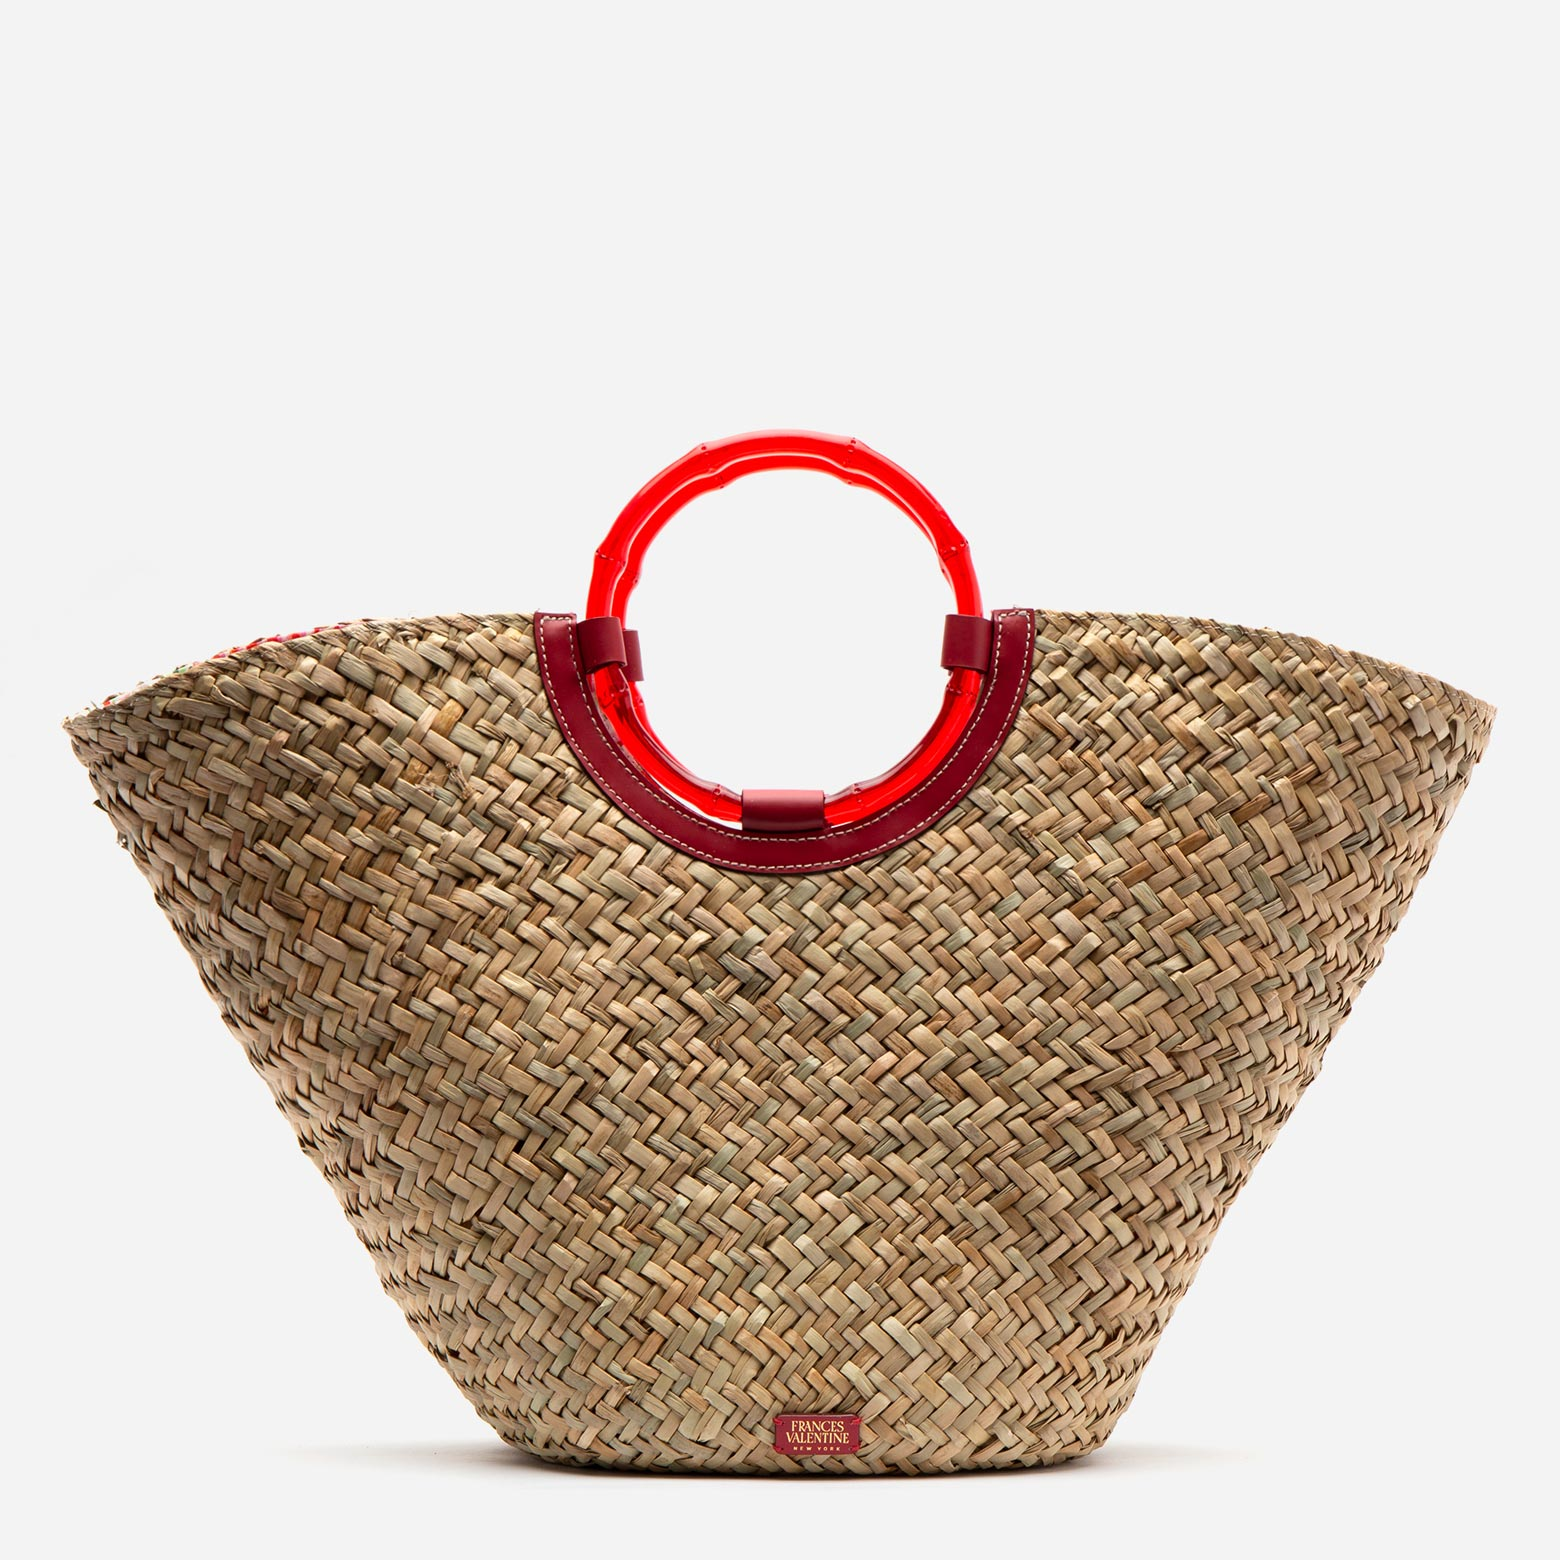 Seagrass Market Basket